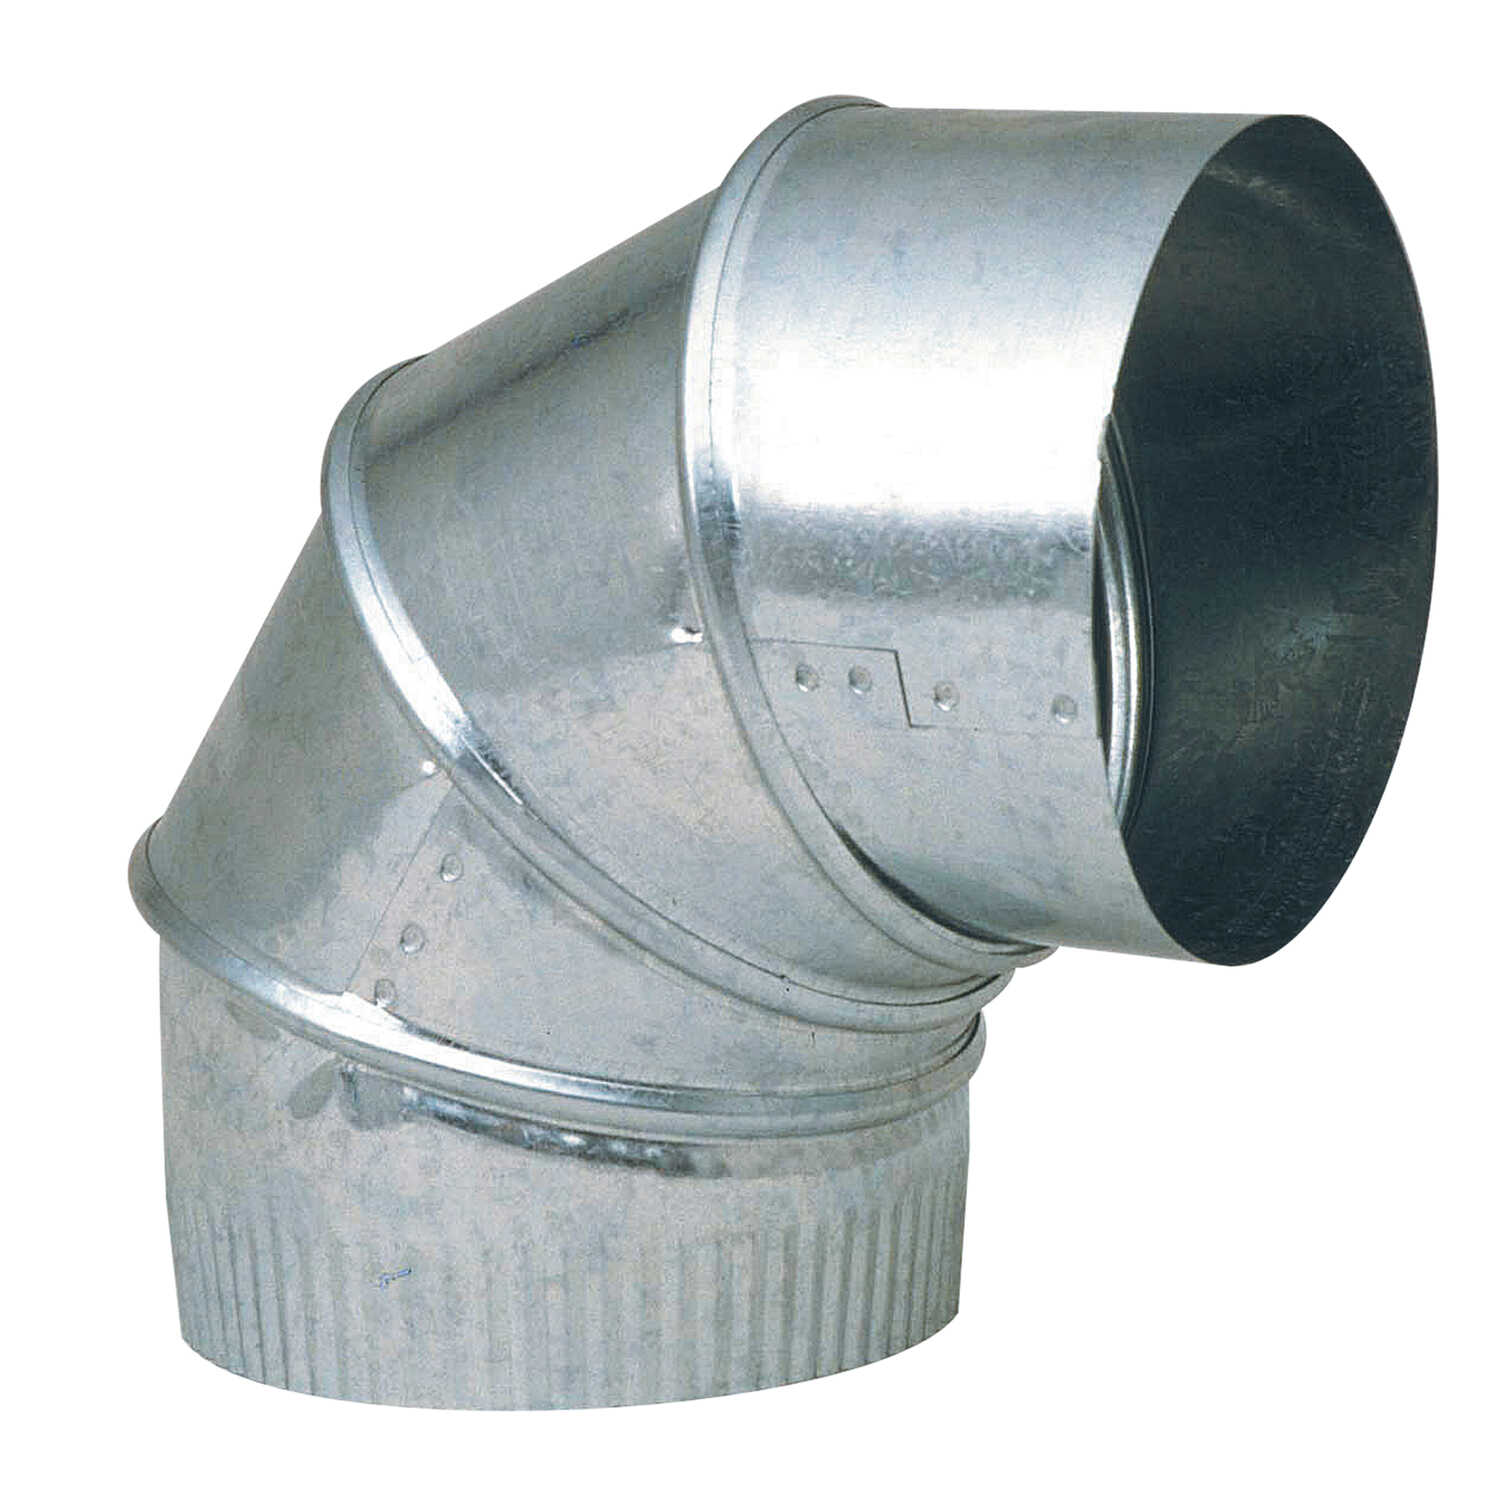 Imperial Manufacturing  9 in. Dia. x 9 in. Dia. Adjustable 90 deg. Galvanized Steel  Elbow Exhaust